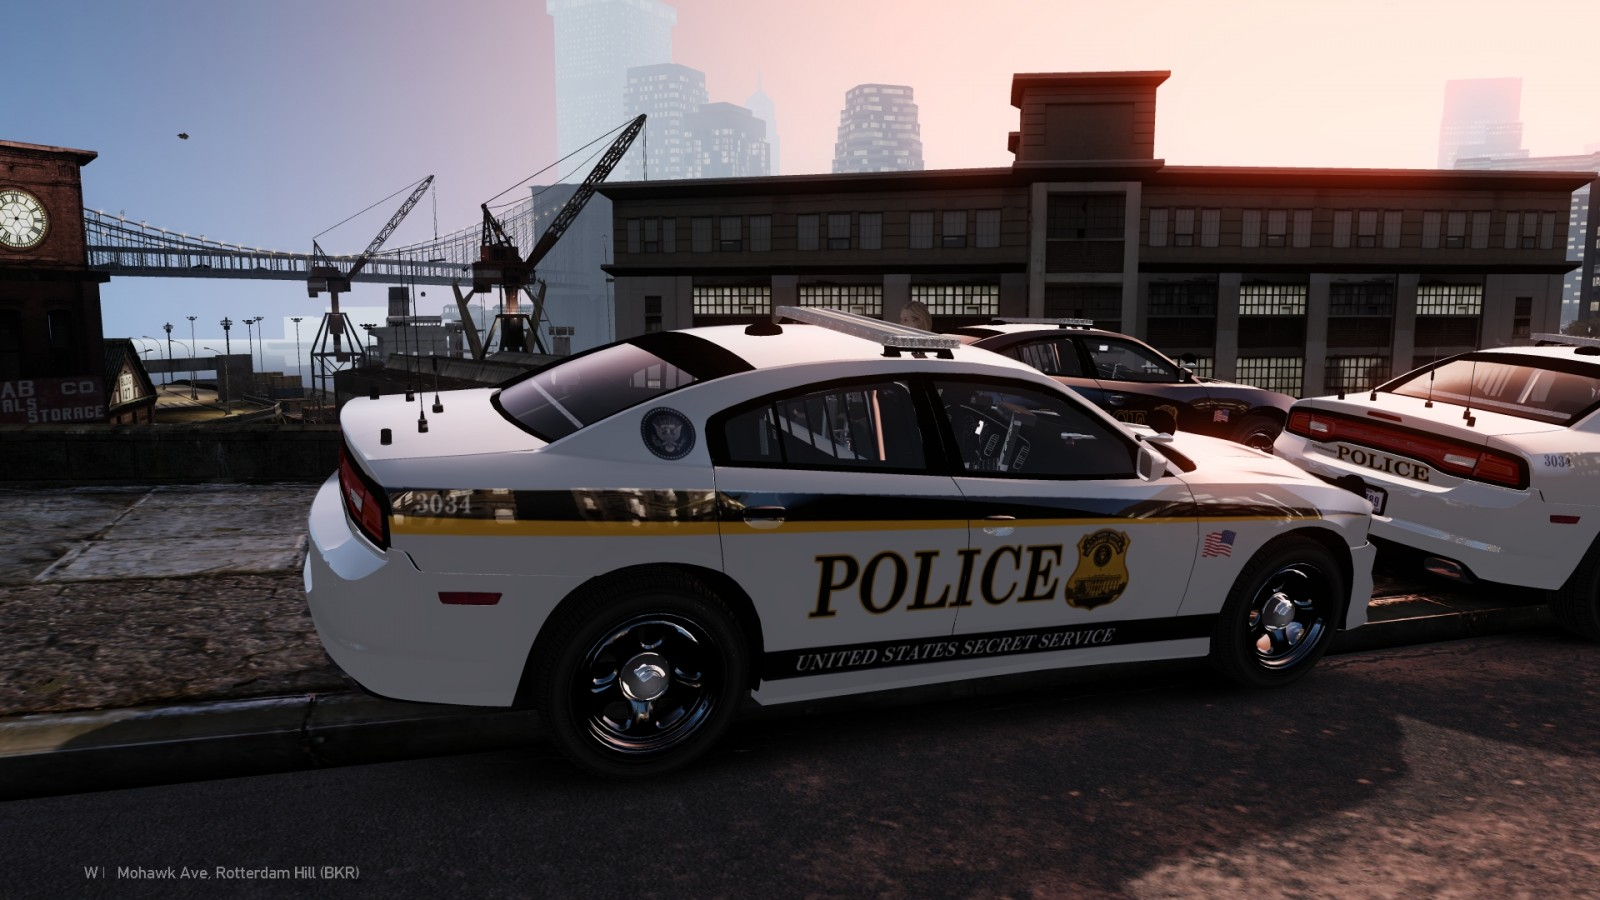 United States Secret Service Uniformed Division   LCPDFRcom 1600x900